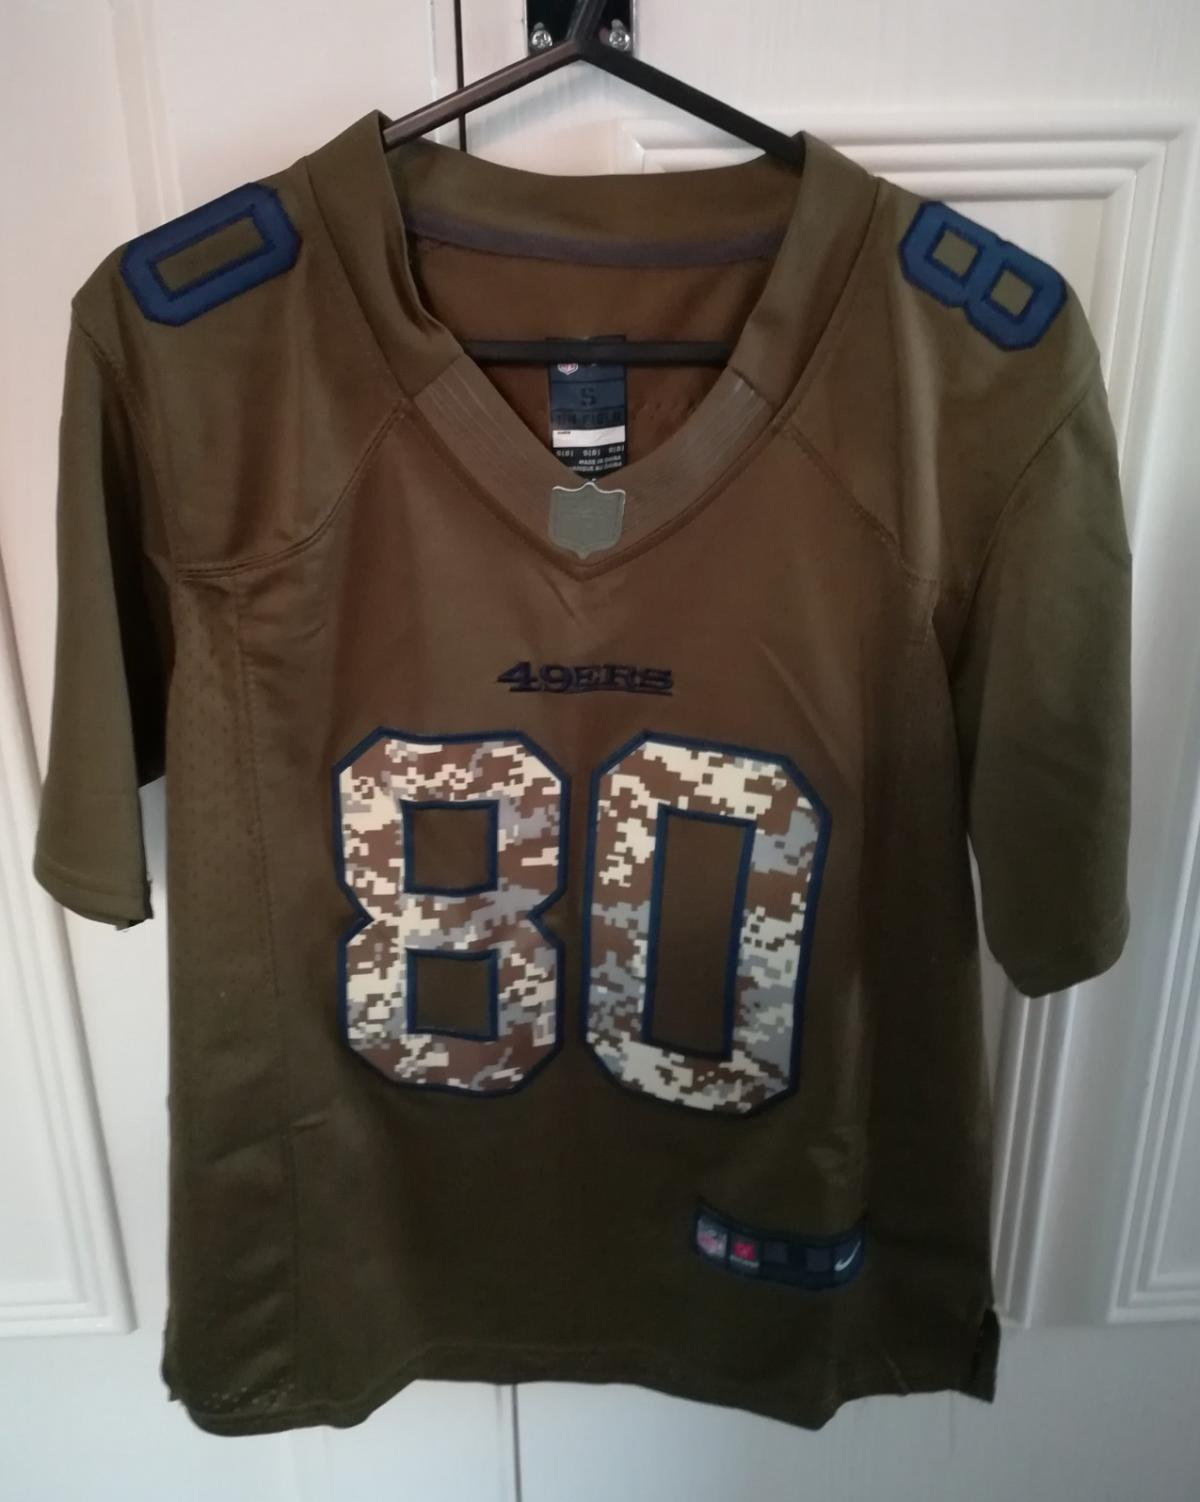 huge discount 9512b d436a Nike NFL 49ers Jersey Jerry Rice in TF5 Wrockwardine for ...